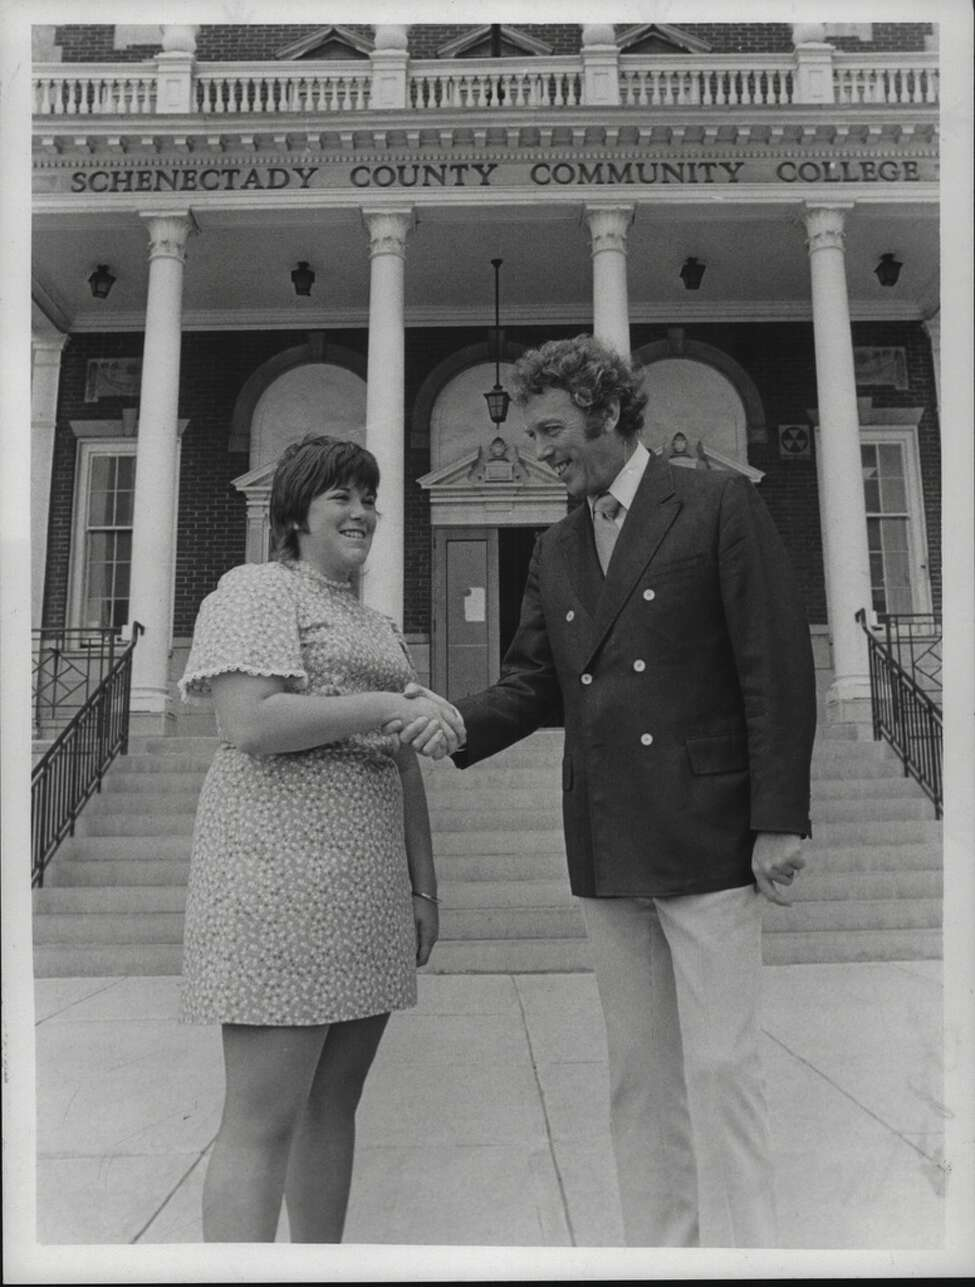 Molly Ergmann is greeted by Francis A. Mullin, director of admissions, at Schenectady County Community College in 1972.